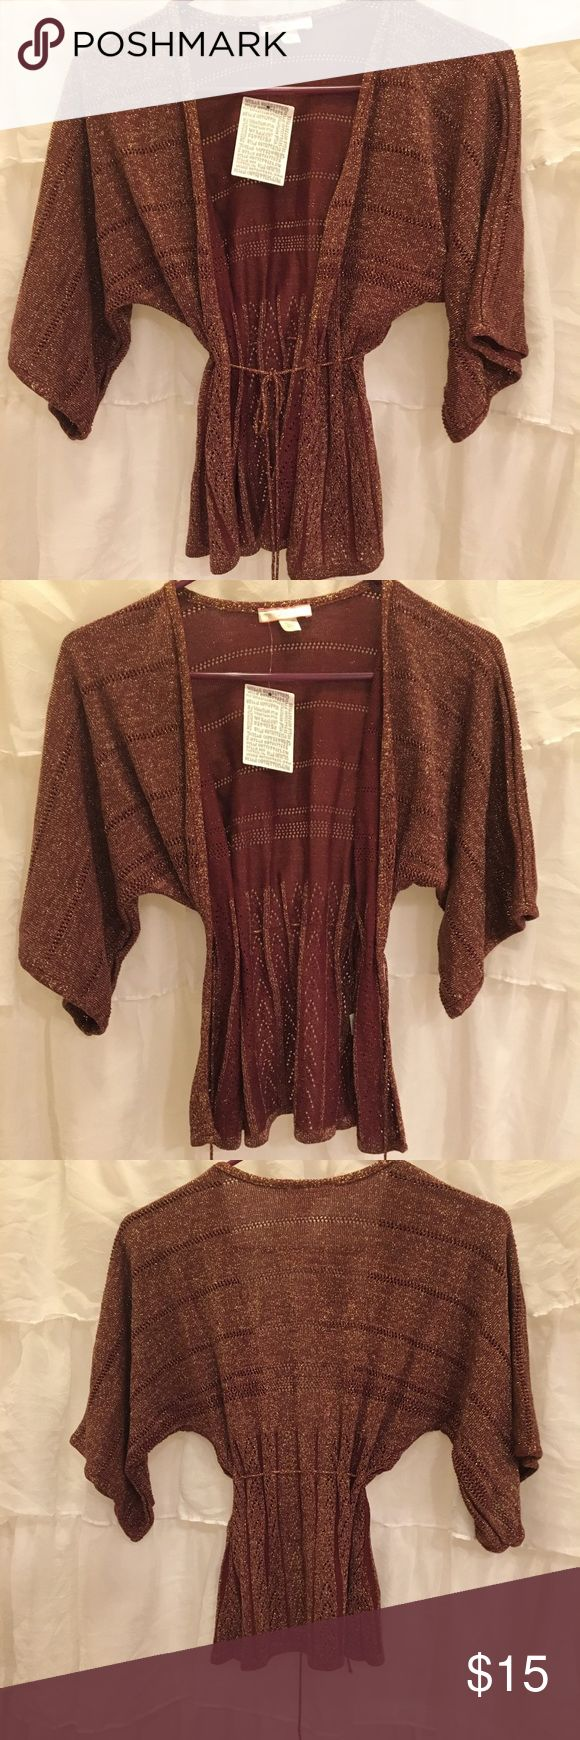 Urban Outfitters Lux Burgundy&Gold Cardigan Urban Outfitters Lux Burgundy&Gold Cardigan. Knit  with beautiful detailing. Ties in front. Wide sleeve. New with tags! Lux Sweaters Cardigans